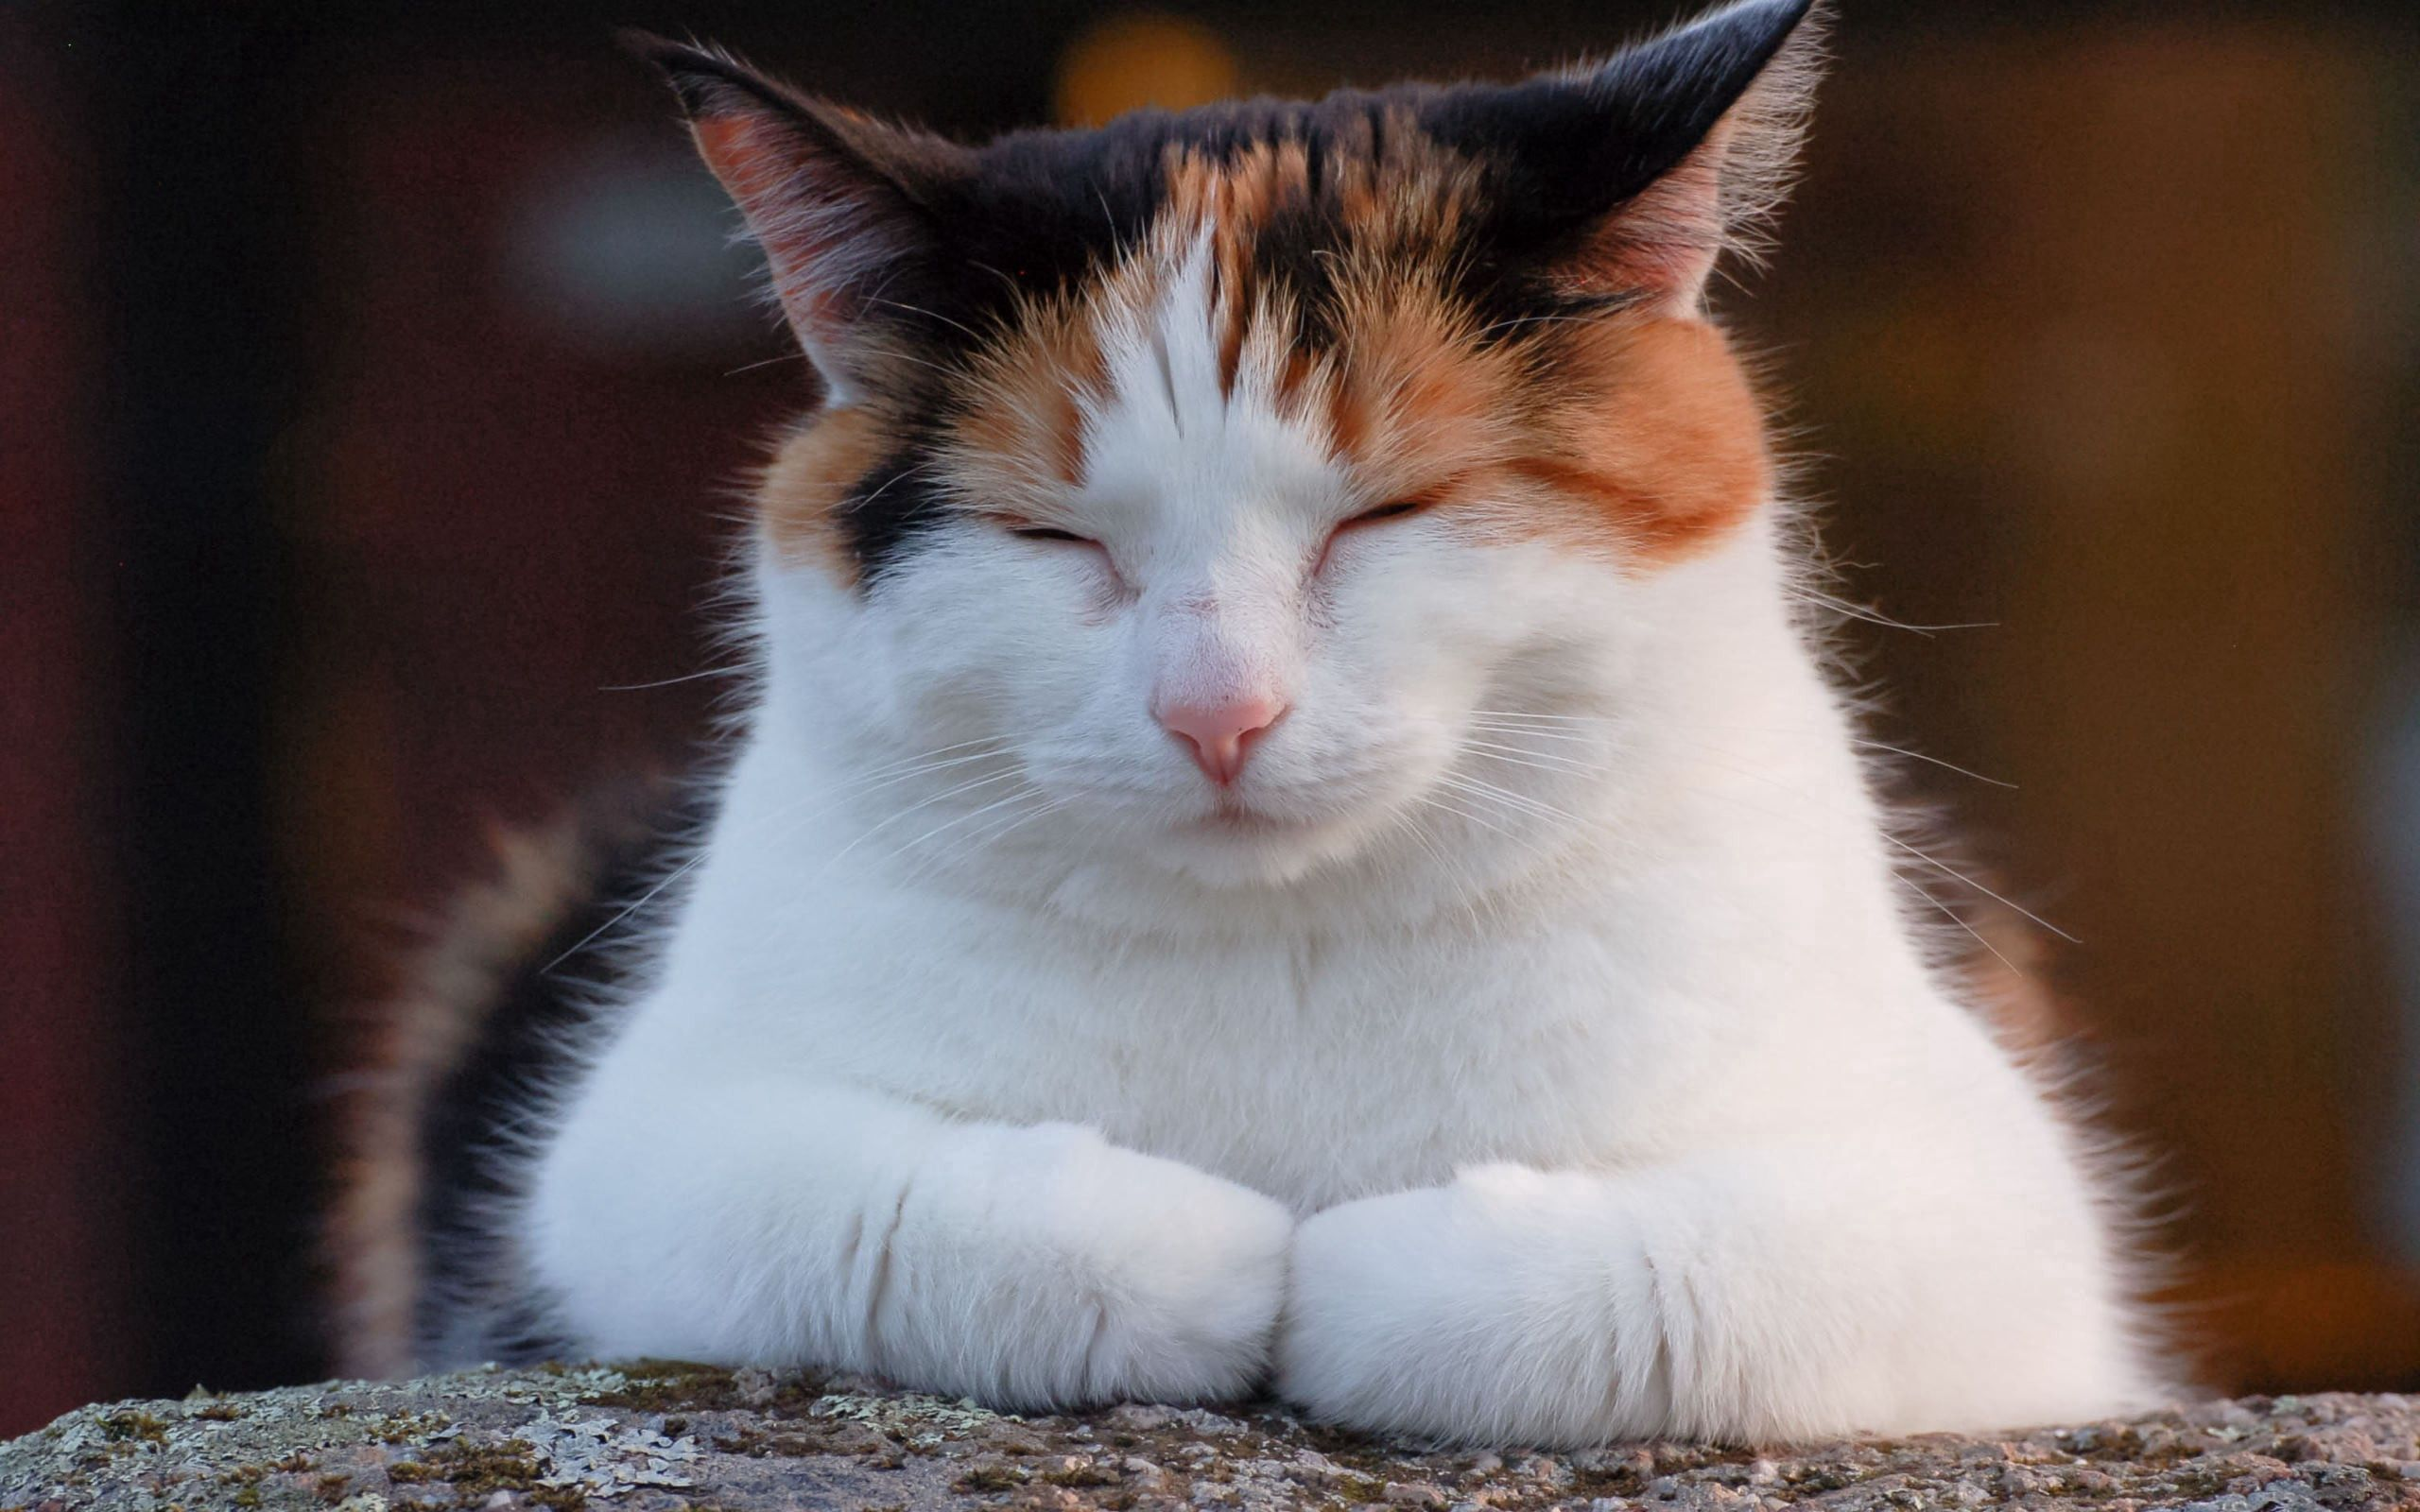 83615 download wallpaper Animals, Cat, Fat, Thick, Relaxation, Rest, Sleep, Dream, Nap, Doze, Spotted, Spotty screensavers and pictures for free